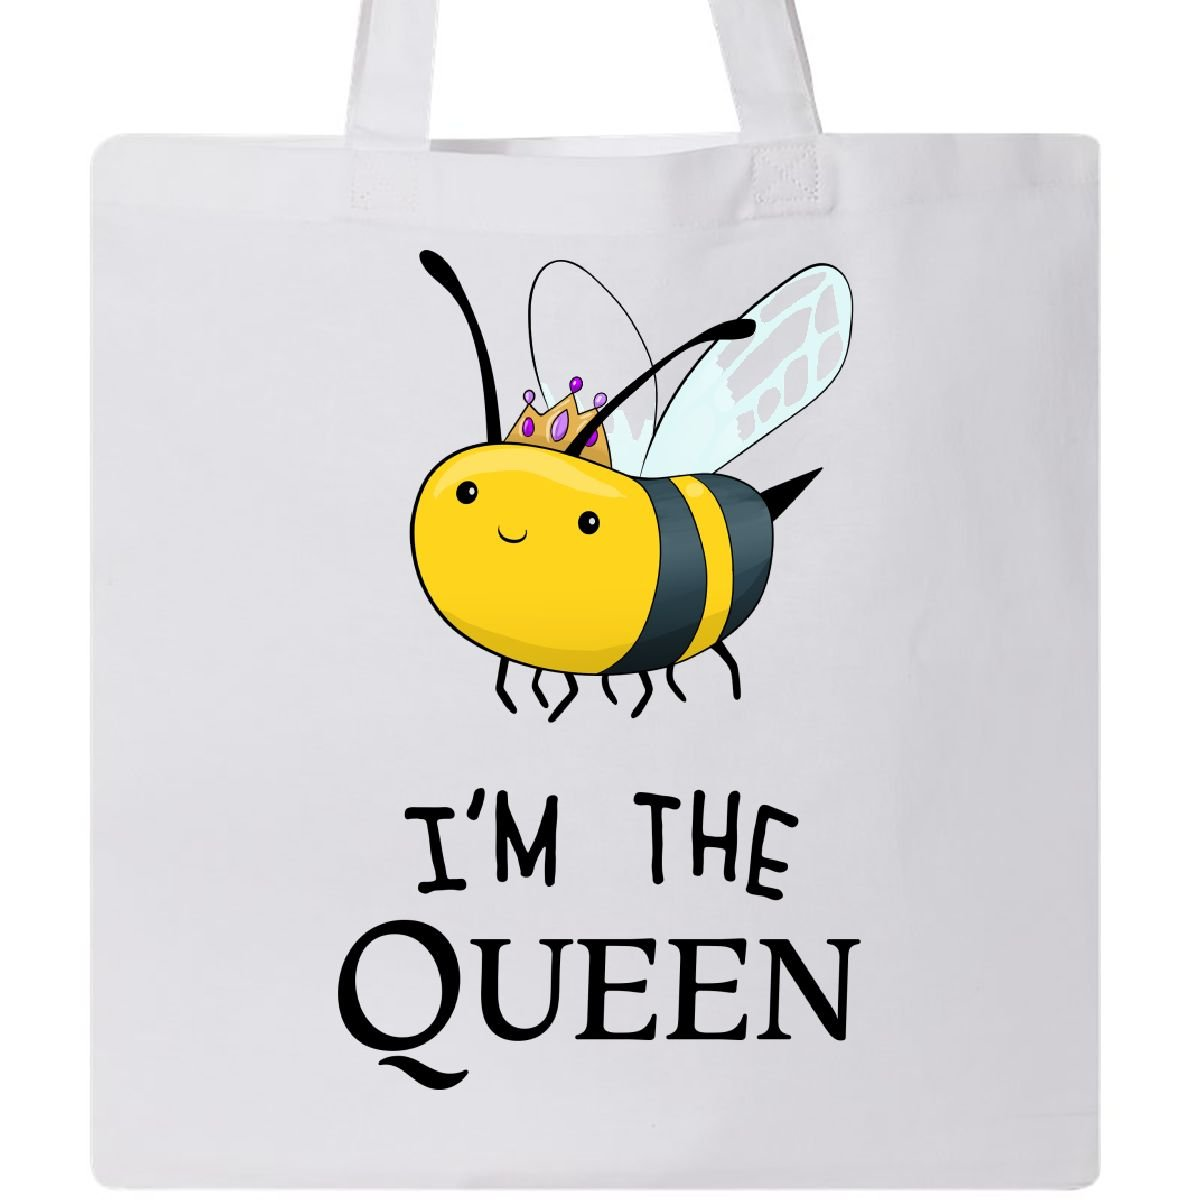 Inktastic I ' m The queen- Cute Queen Beeトートバッグ One Size B073VCP6KN ホワイト ホワイト